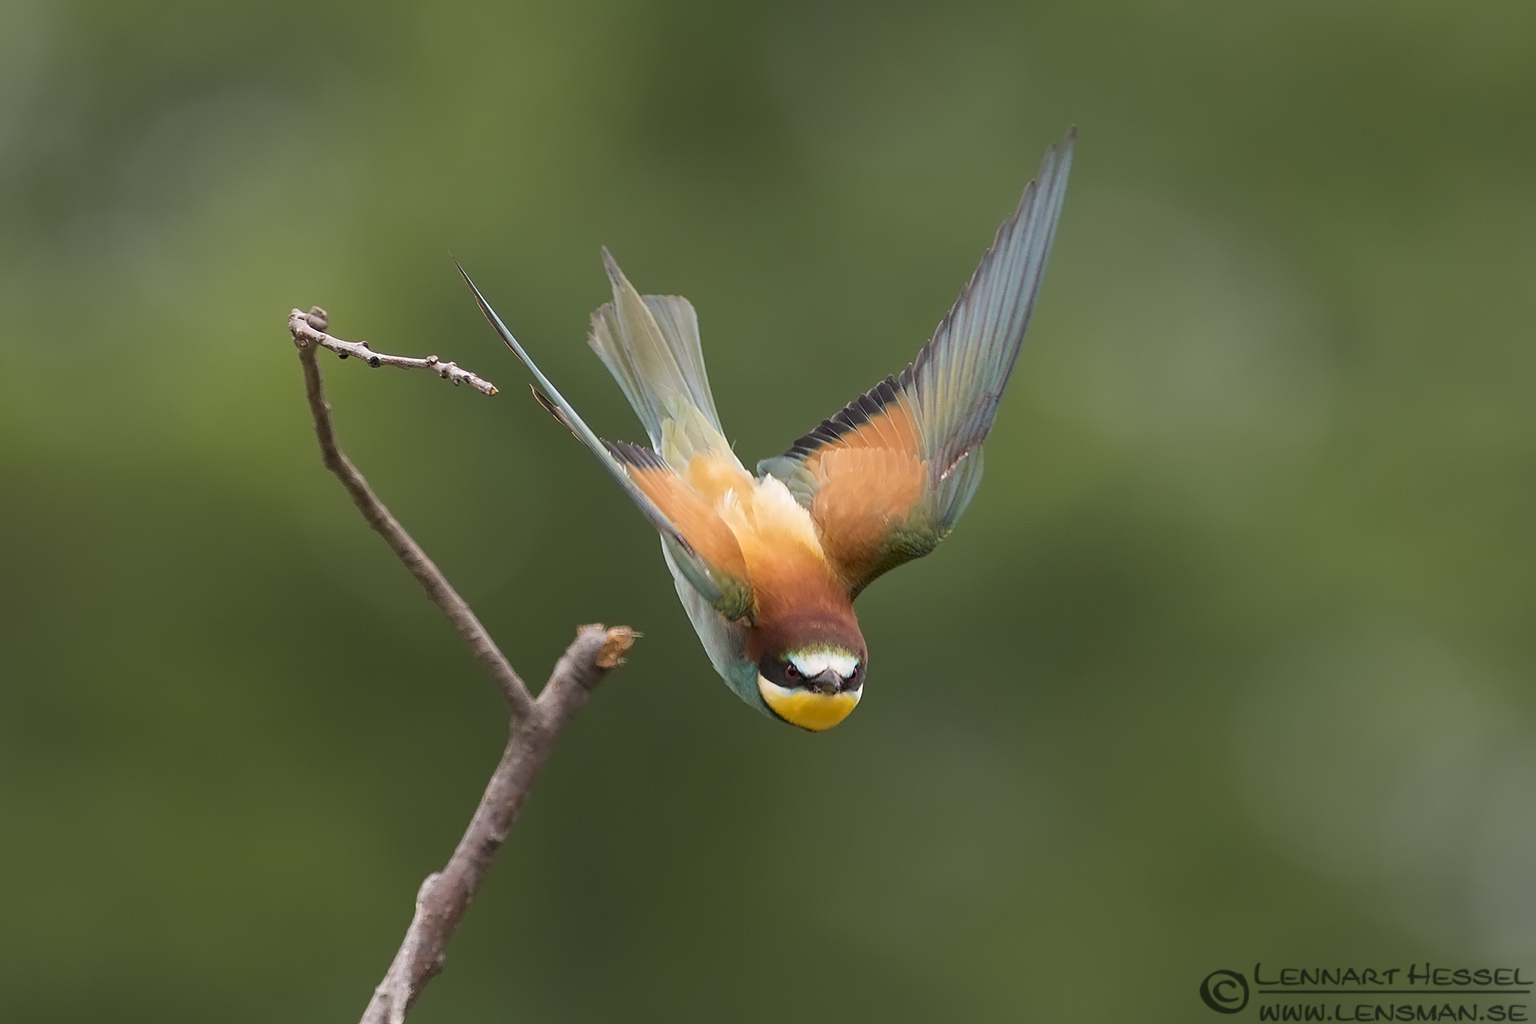 European Bee-eater in Hungary wild bird